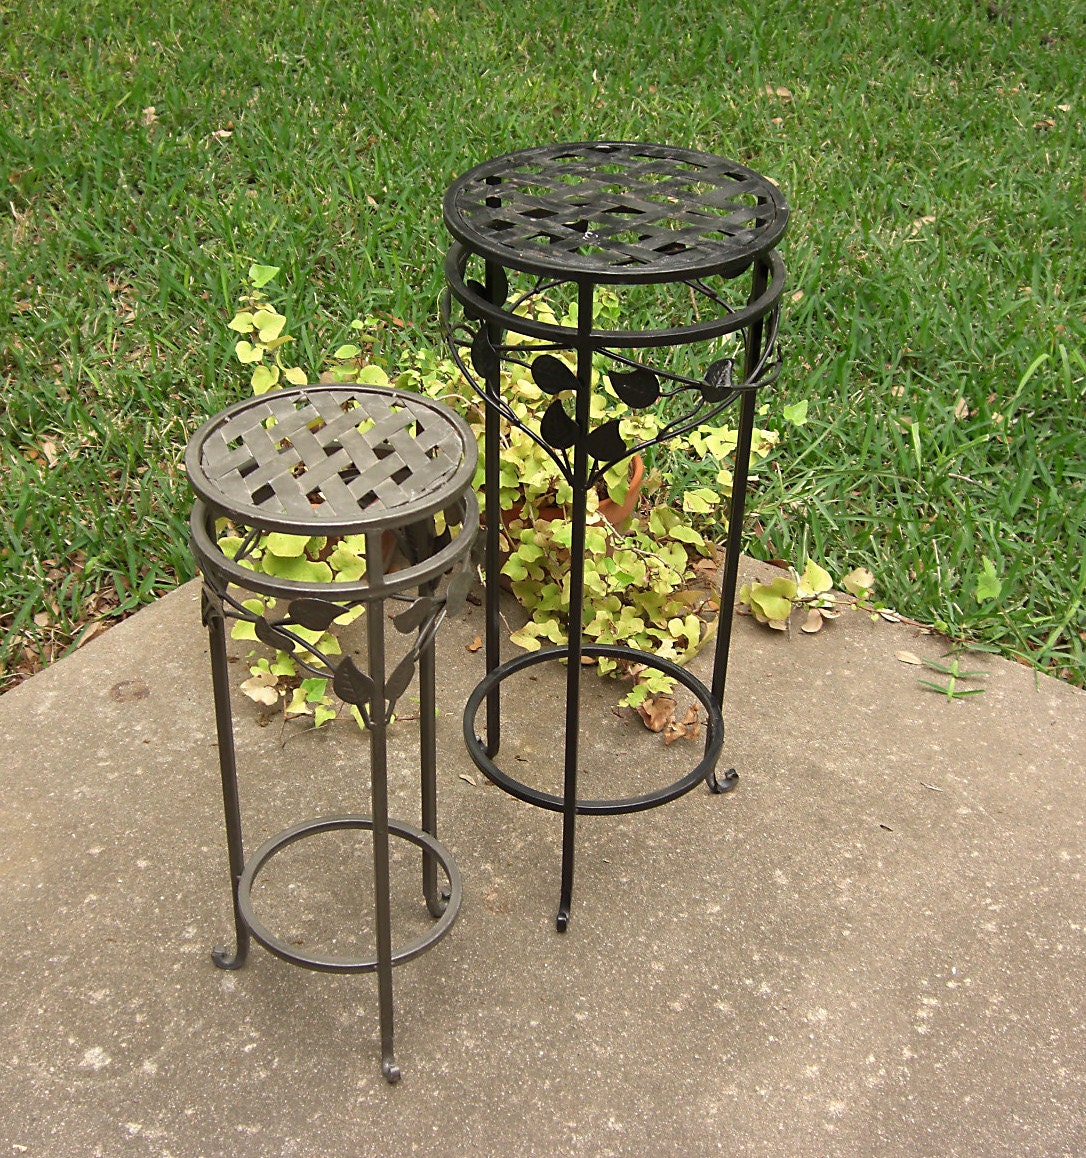 2 wrought iron metal plant stands lattice and by successionary. Black Bedroom Furniture Sets. Home Design Ideas